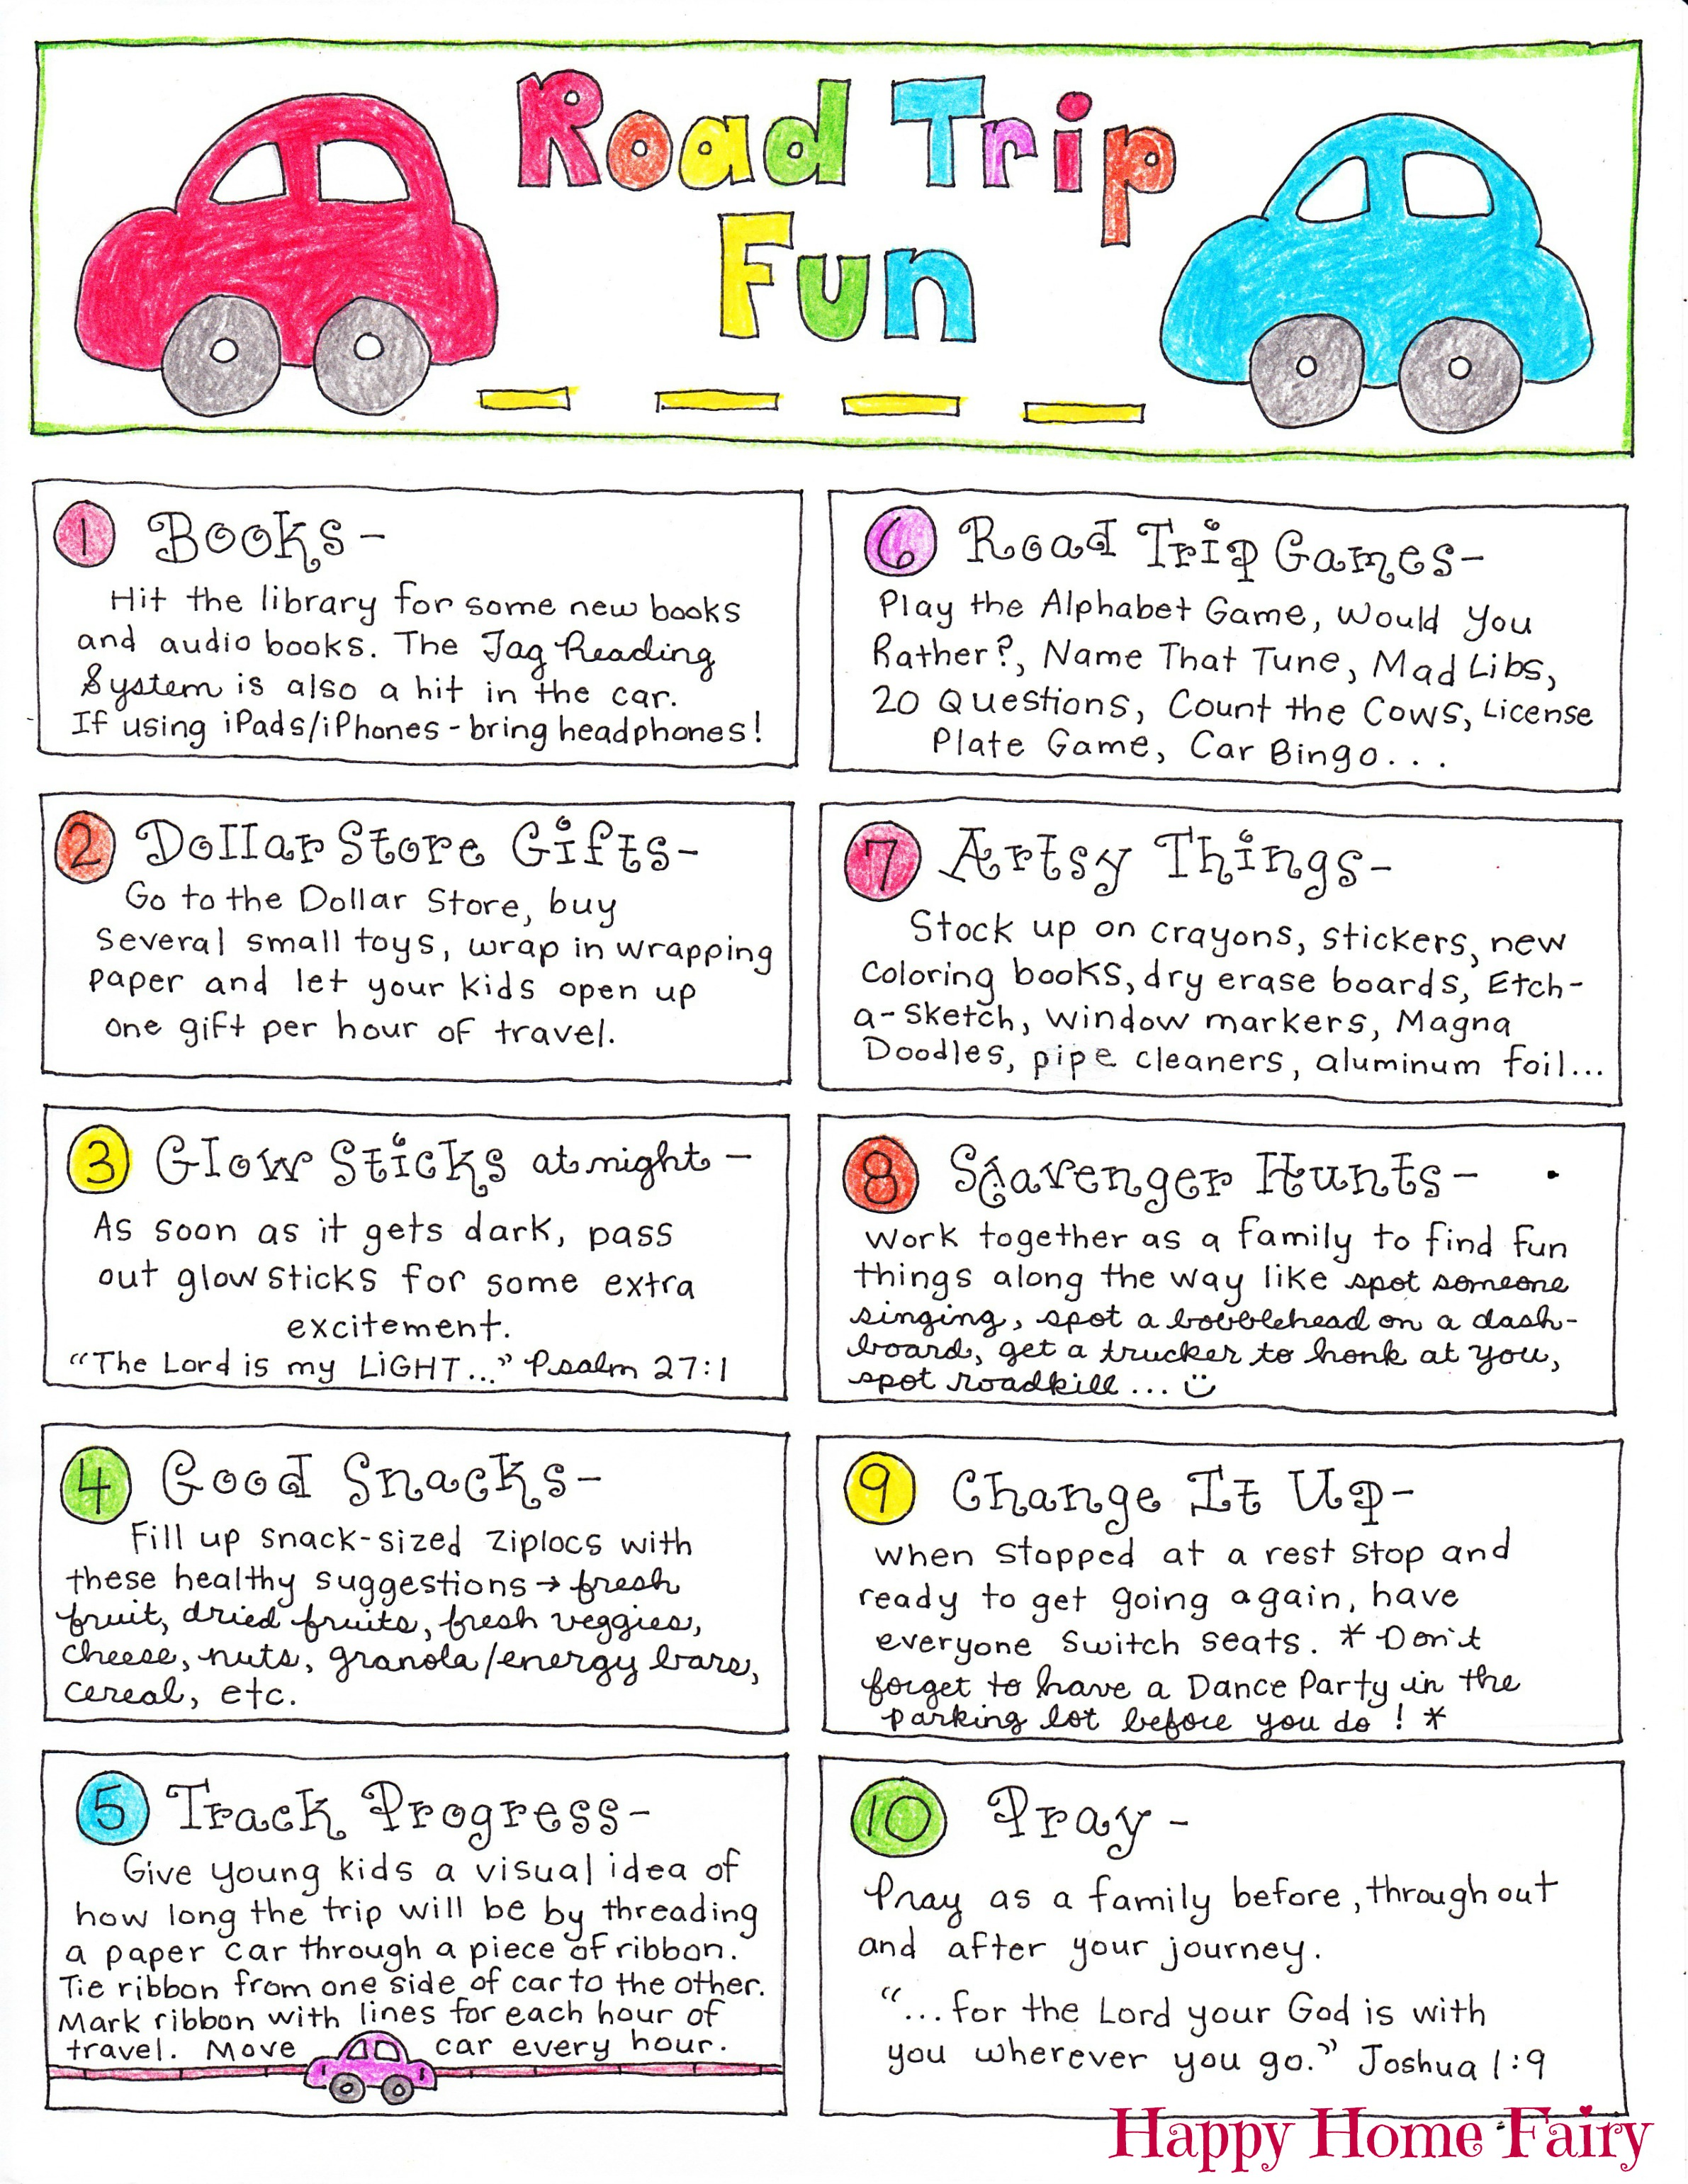 Road Trip Tips Happy Home Fairy